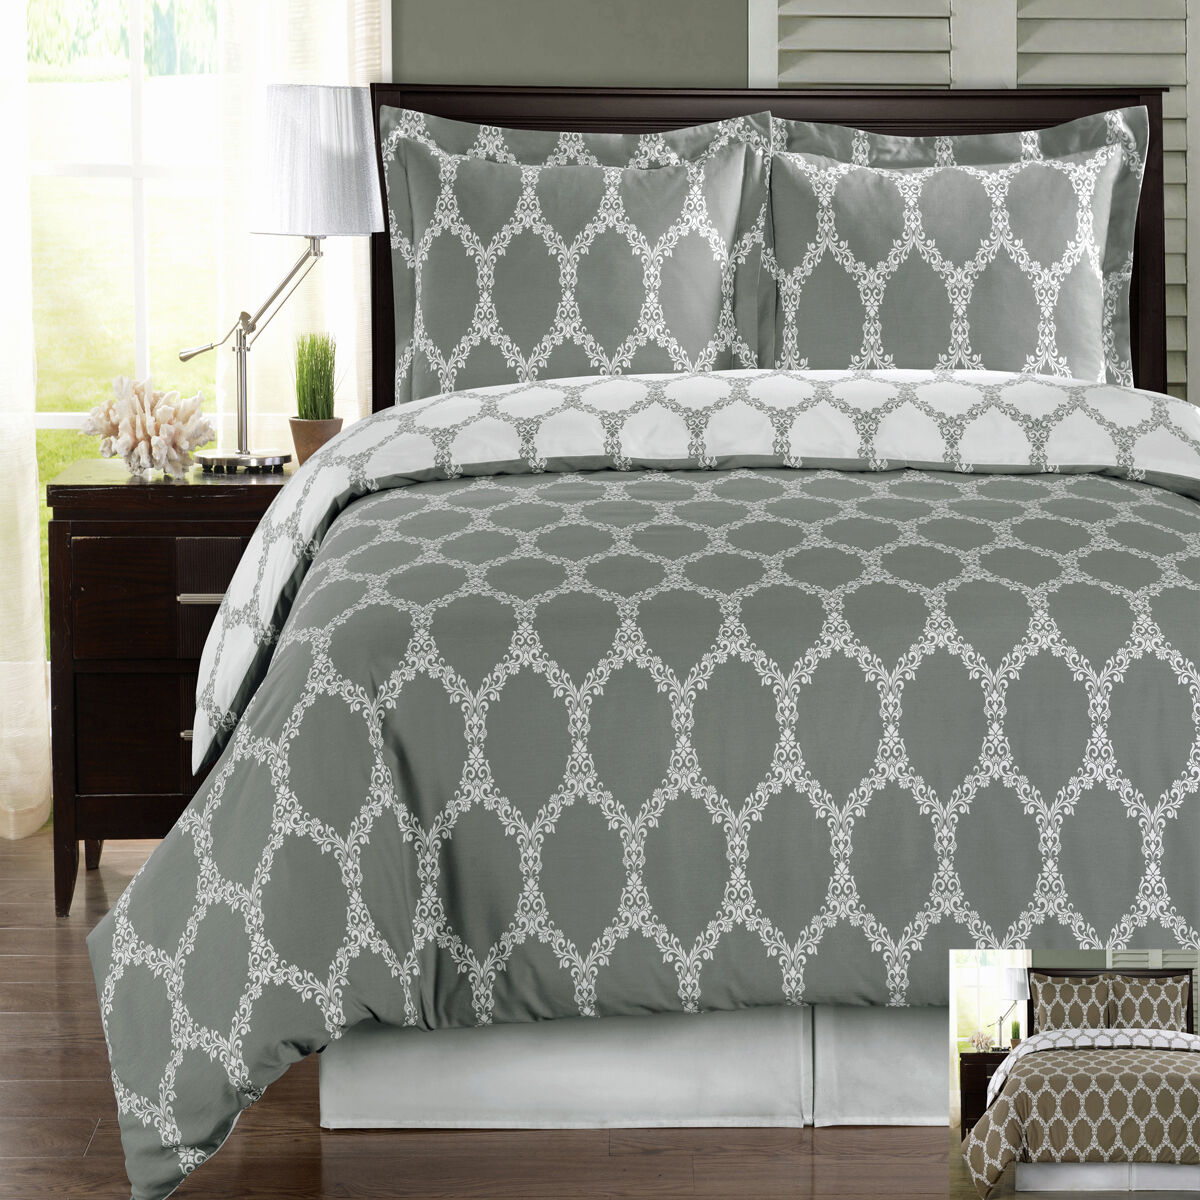 3PC Brooksfield Combed Cotton Duvet Cover Set 300 Thread Count-Reversible